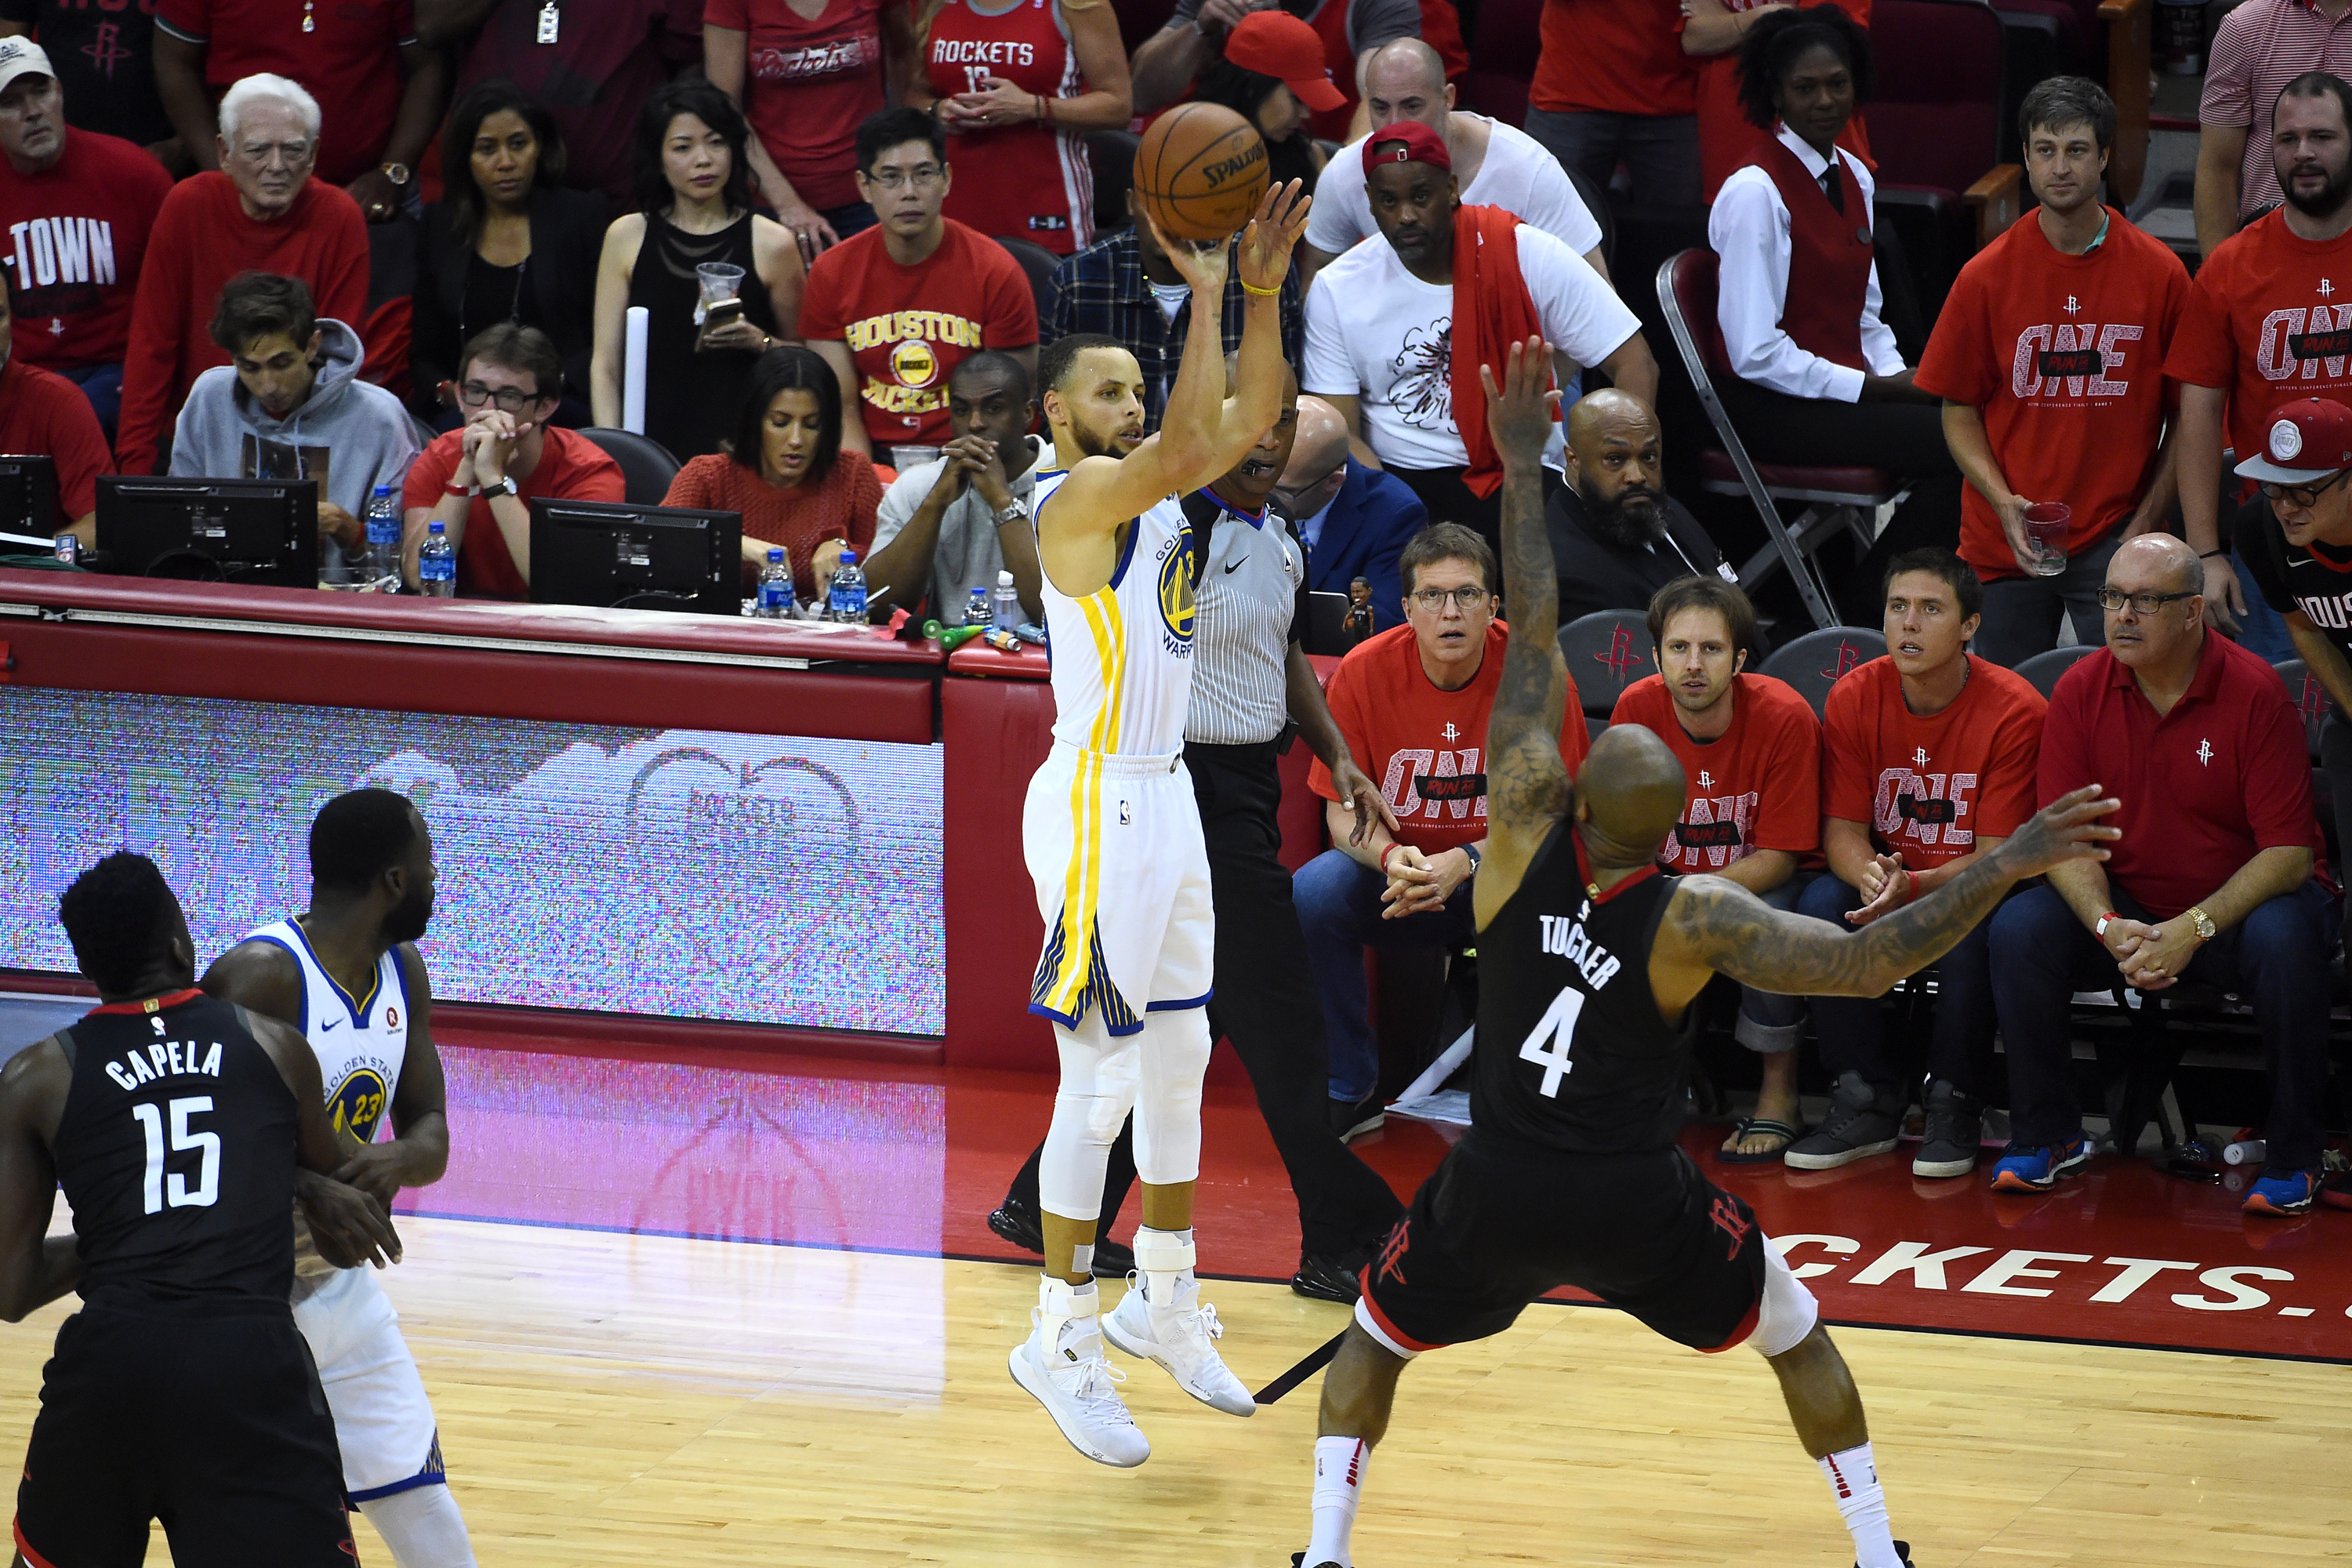 bb29552692fb What went right for the Golden State Warriors and what went wrong for the Houston  Rockets in Game 7